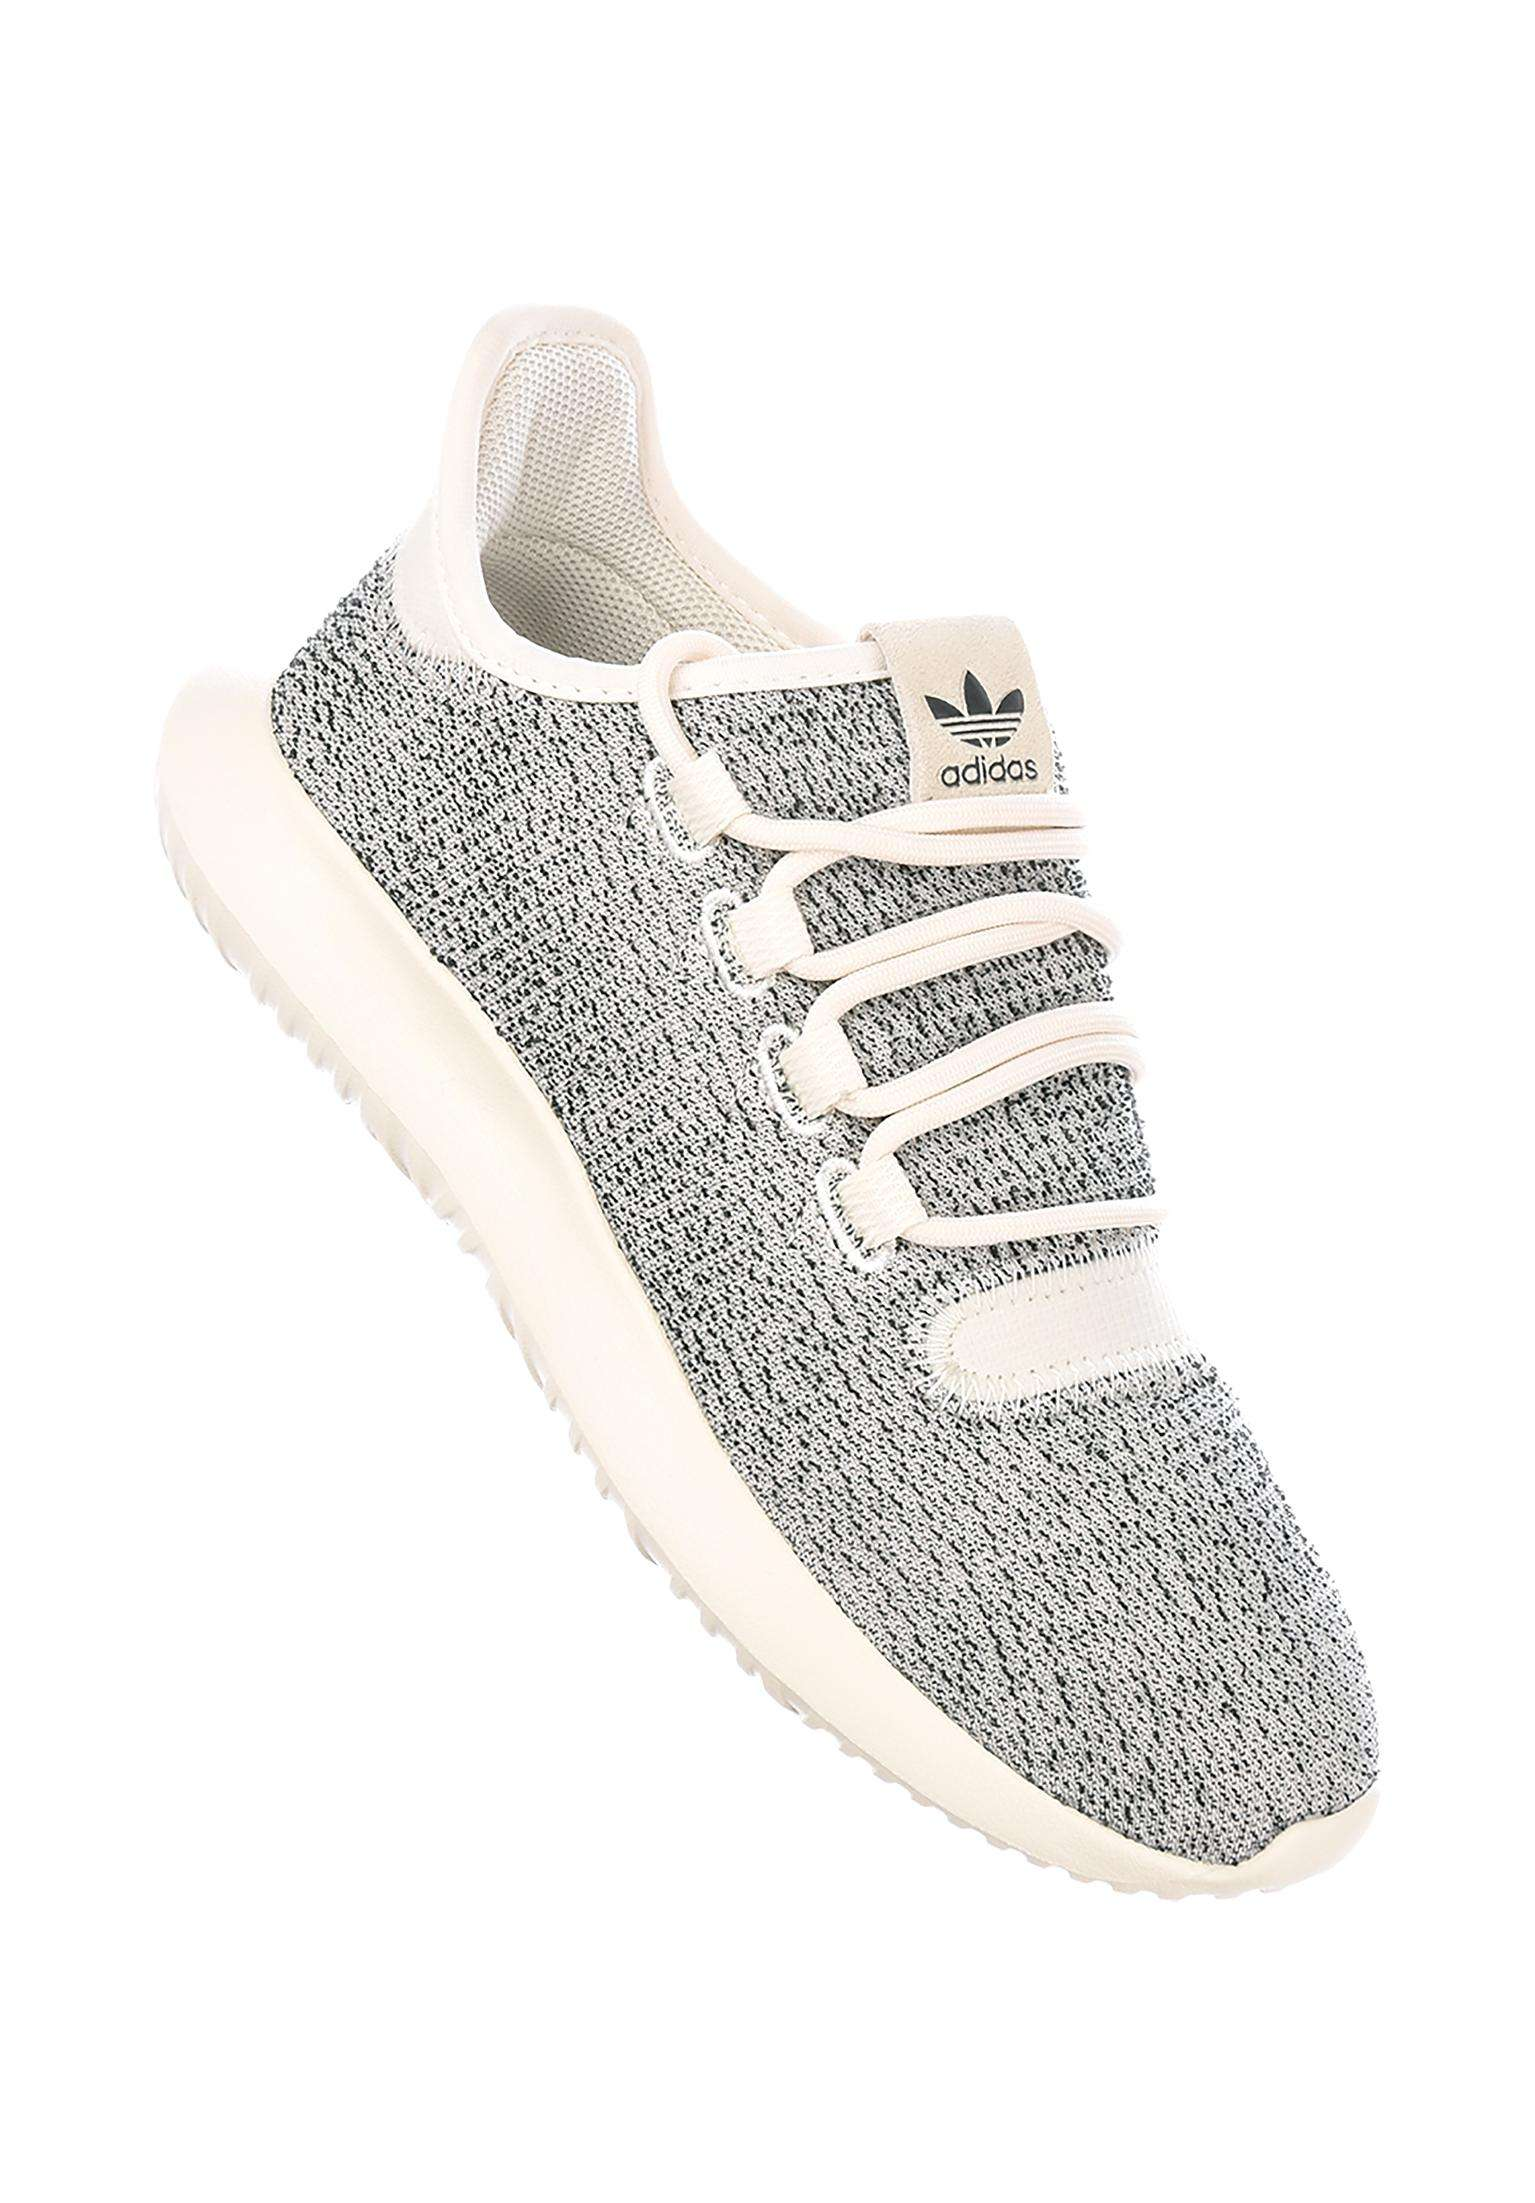 best sneakers 5c9a1 d74c7 italy adidas tubular off white e9d80 ce22d